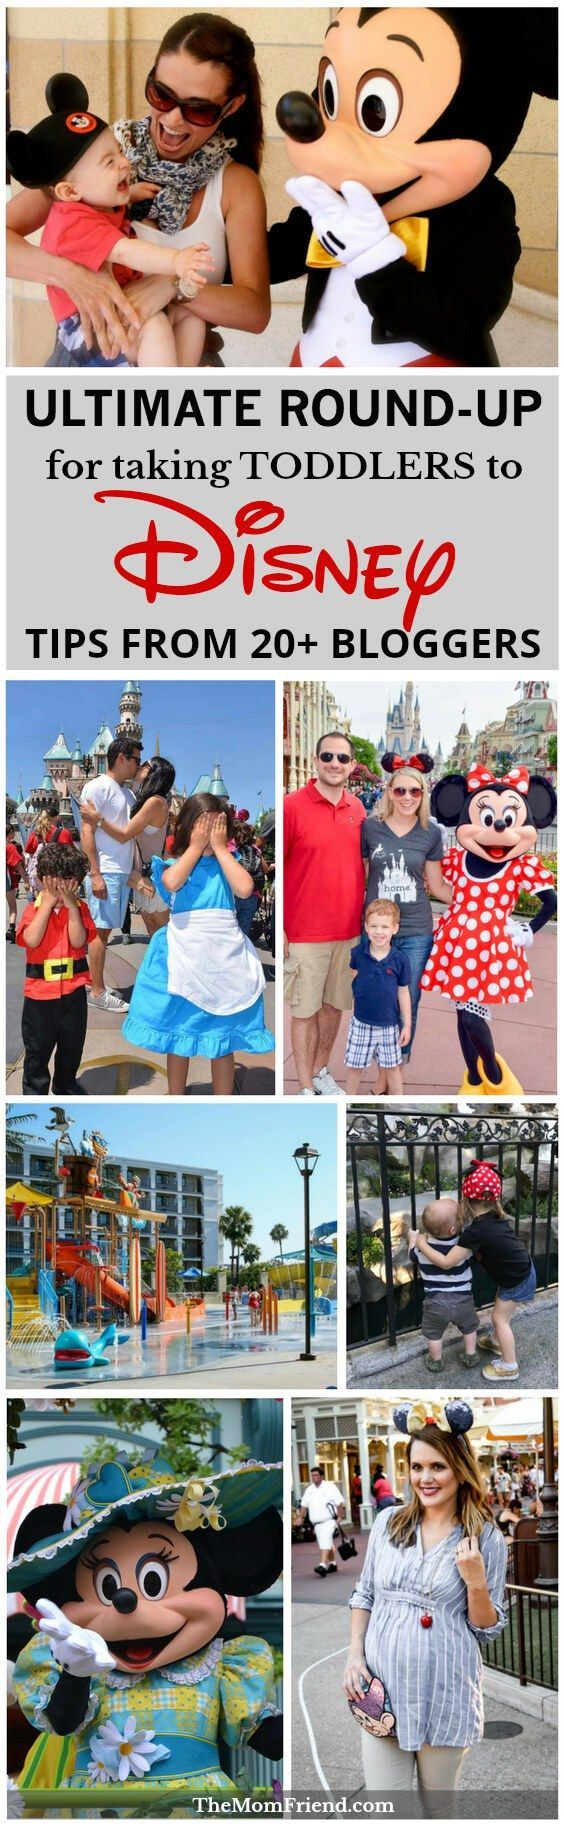 Planning a trip to Disney? Check out this huge one-stop resource with all the best tips, packing lists, secrets and advice for doing Disney with toddlers from top bloggers.   | Disney with kids | Disneyland tips | Disneyland secrets | Disneyland outfits | Disneyland dining | packing for Disney | Disneyland pictures | travel with kids